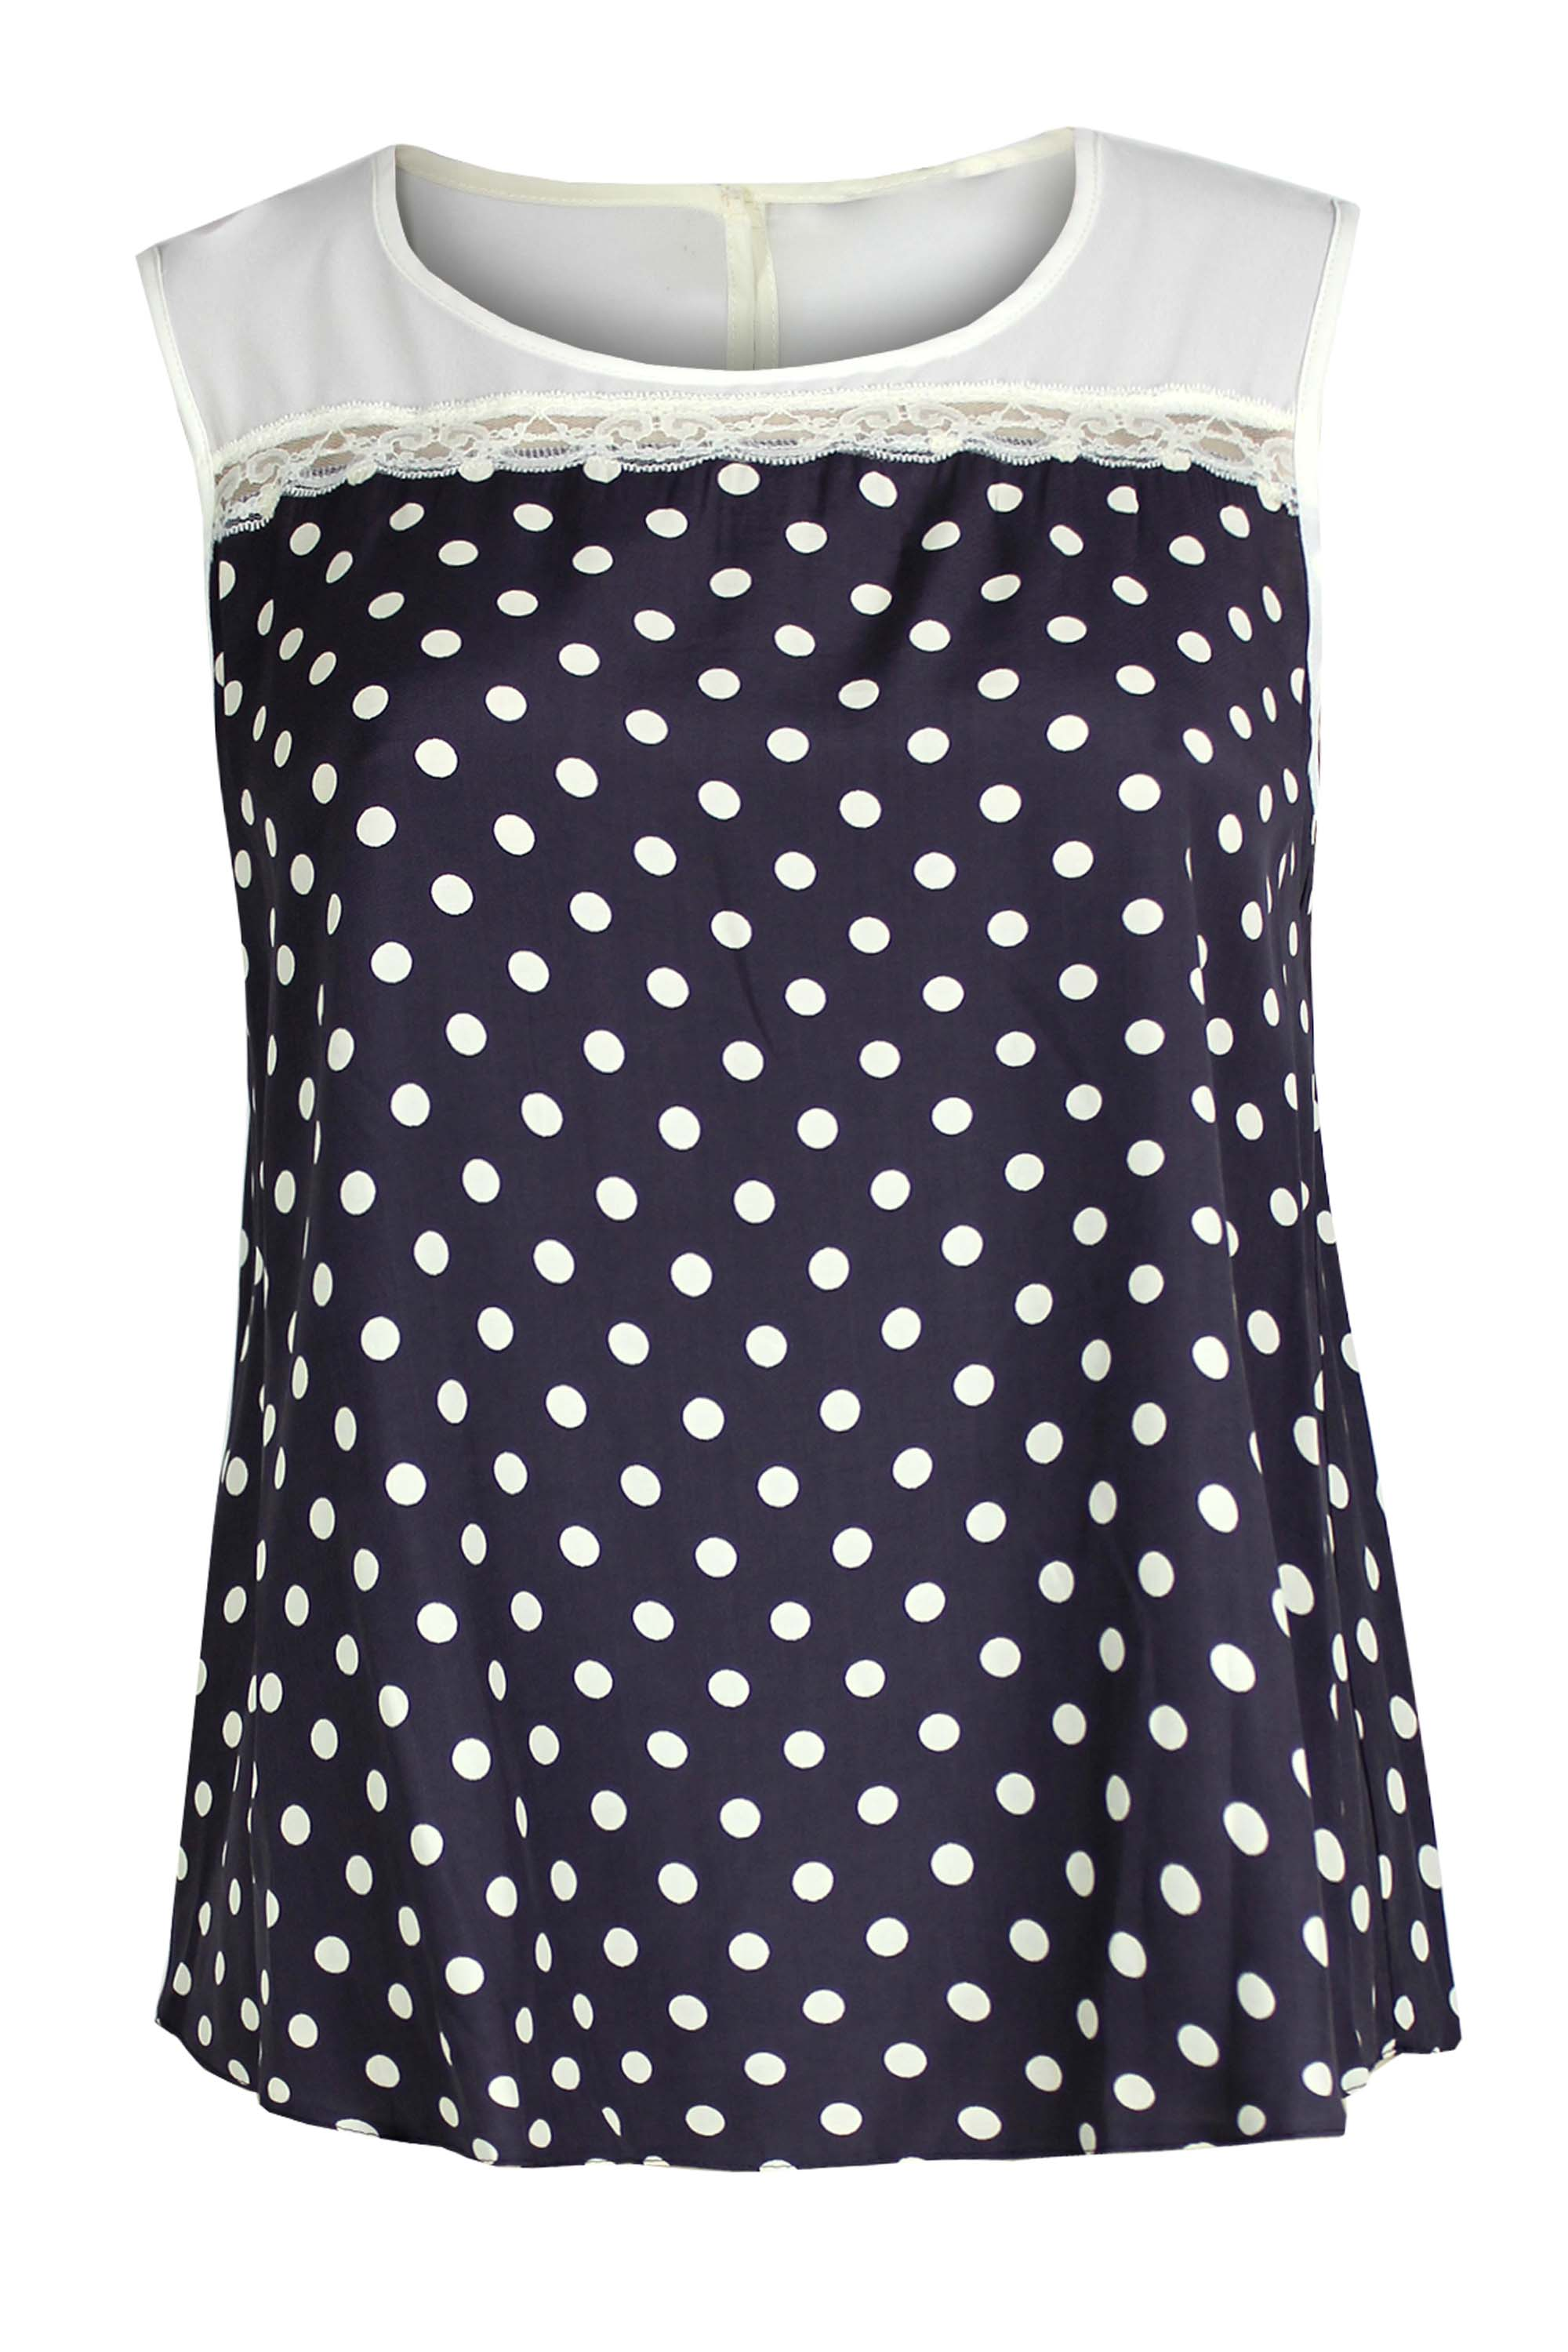 Ladies Womens Plus Size Sleeveless Polka Dot Lace Insert Top